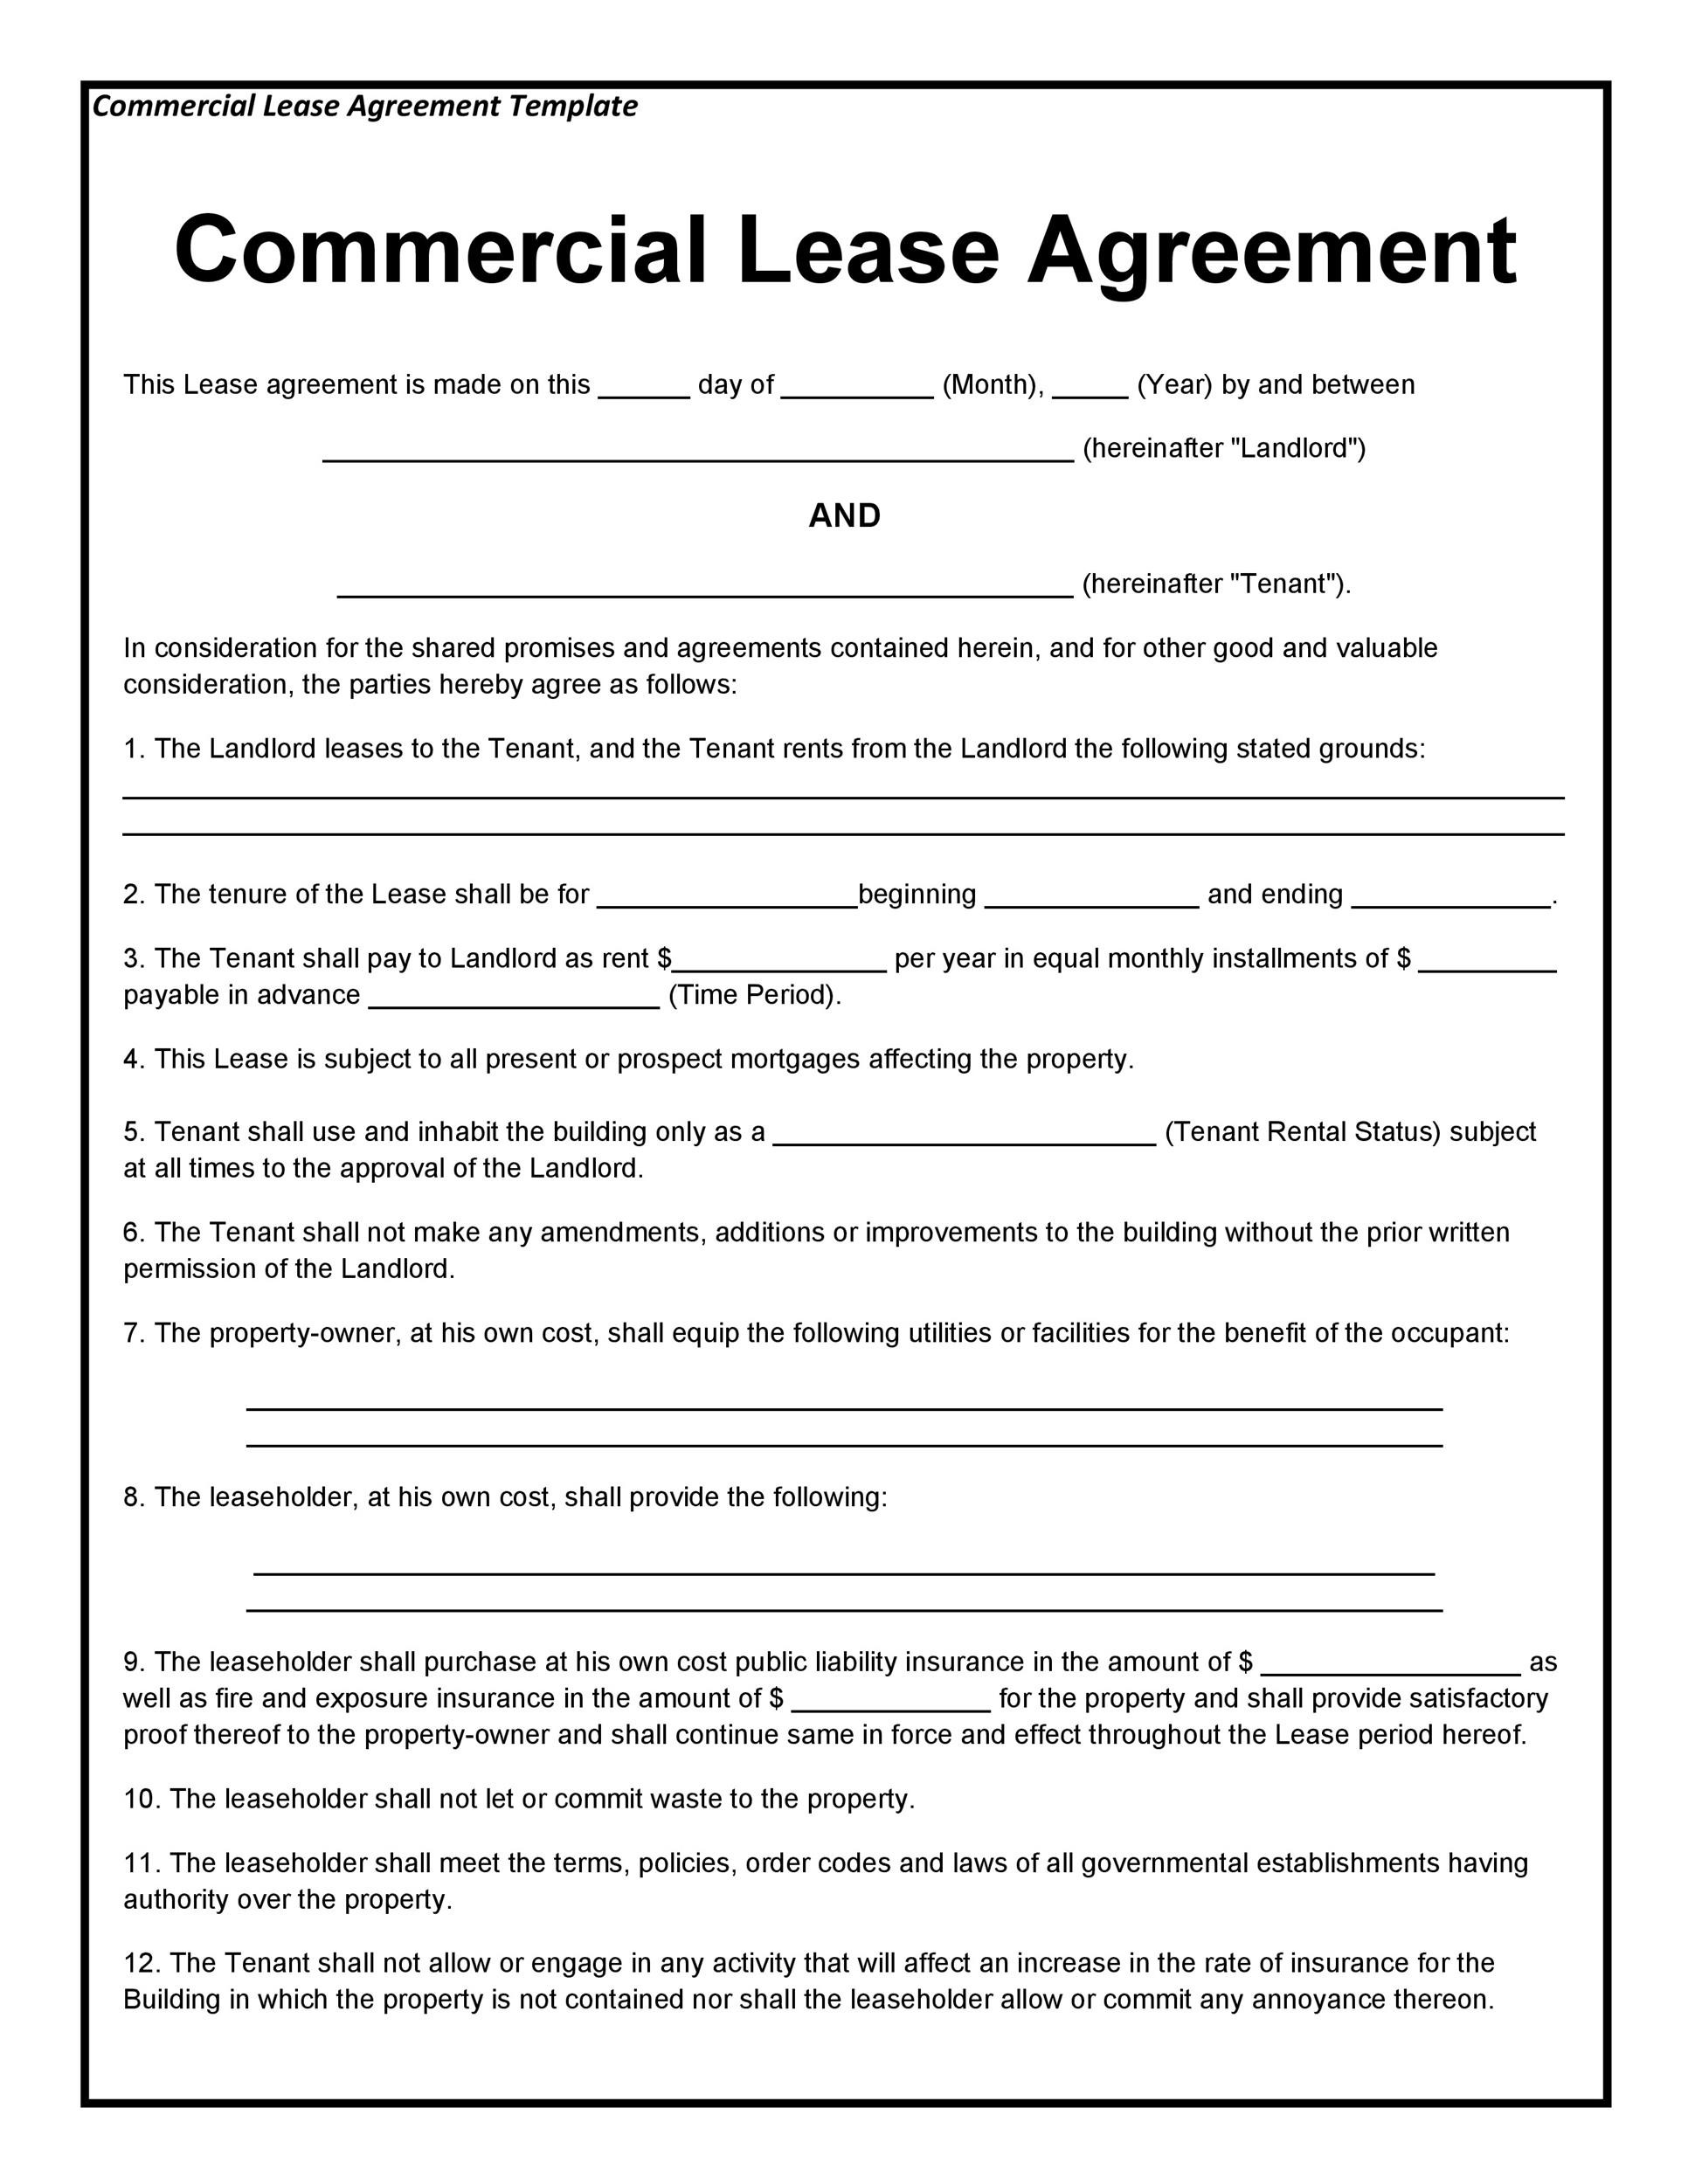 26 Free mercial Lease Agreement Templates TemplateLab